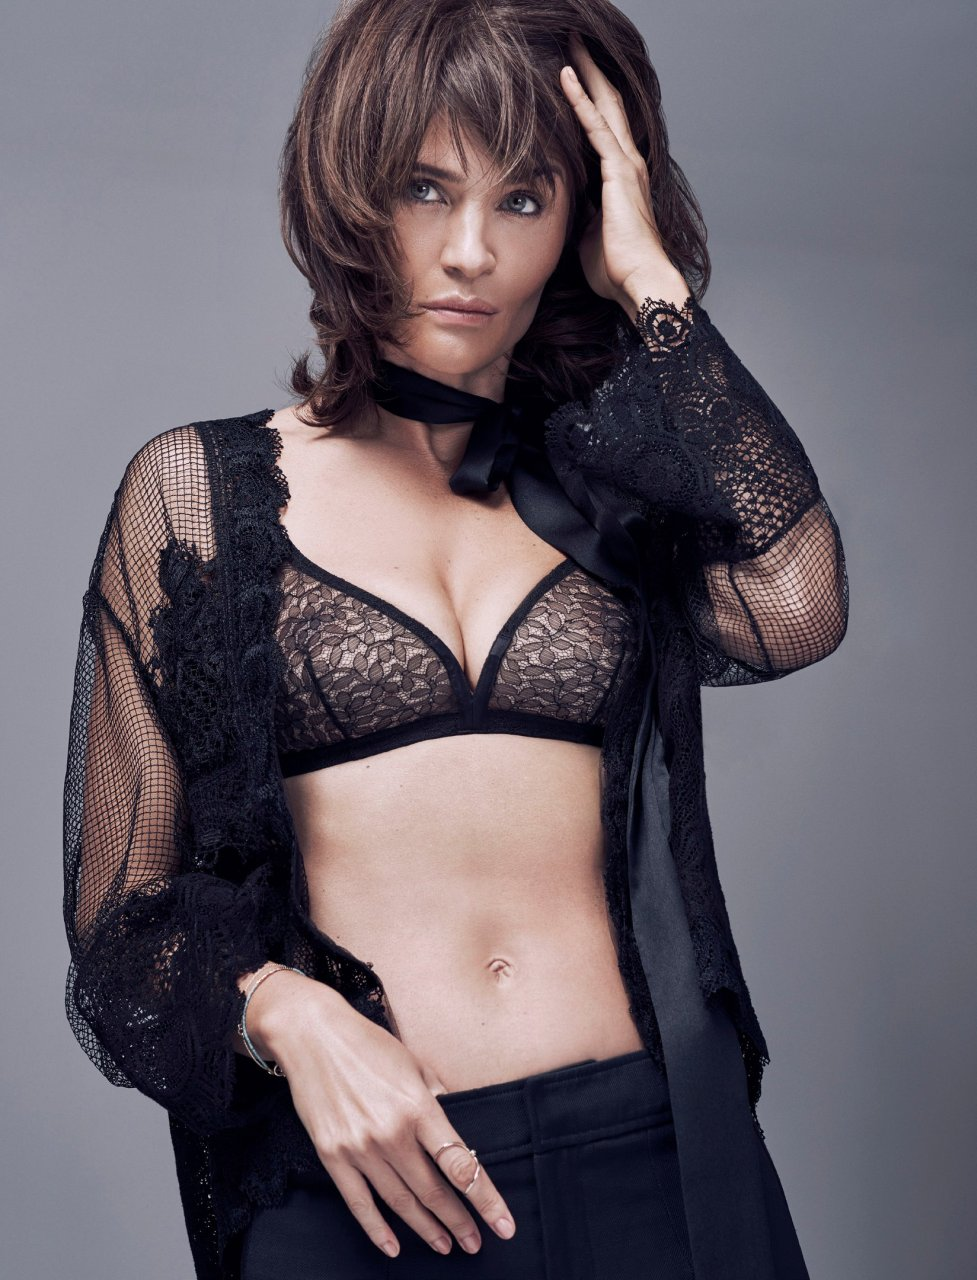 Helena Christensen Nude Photos and Videos   #TheFappening